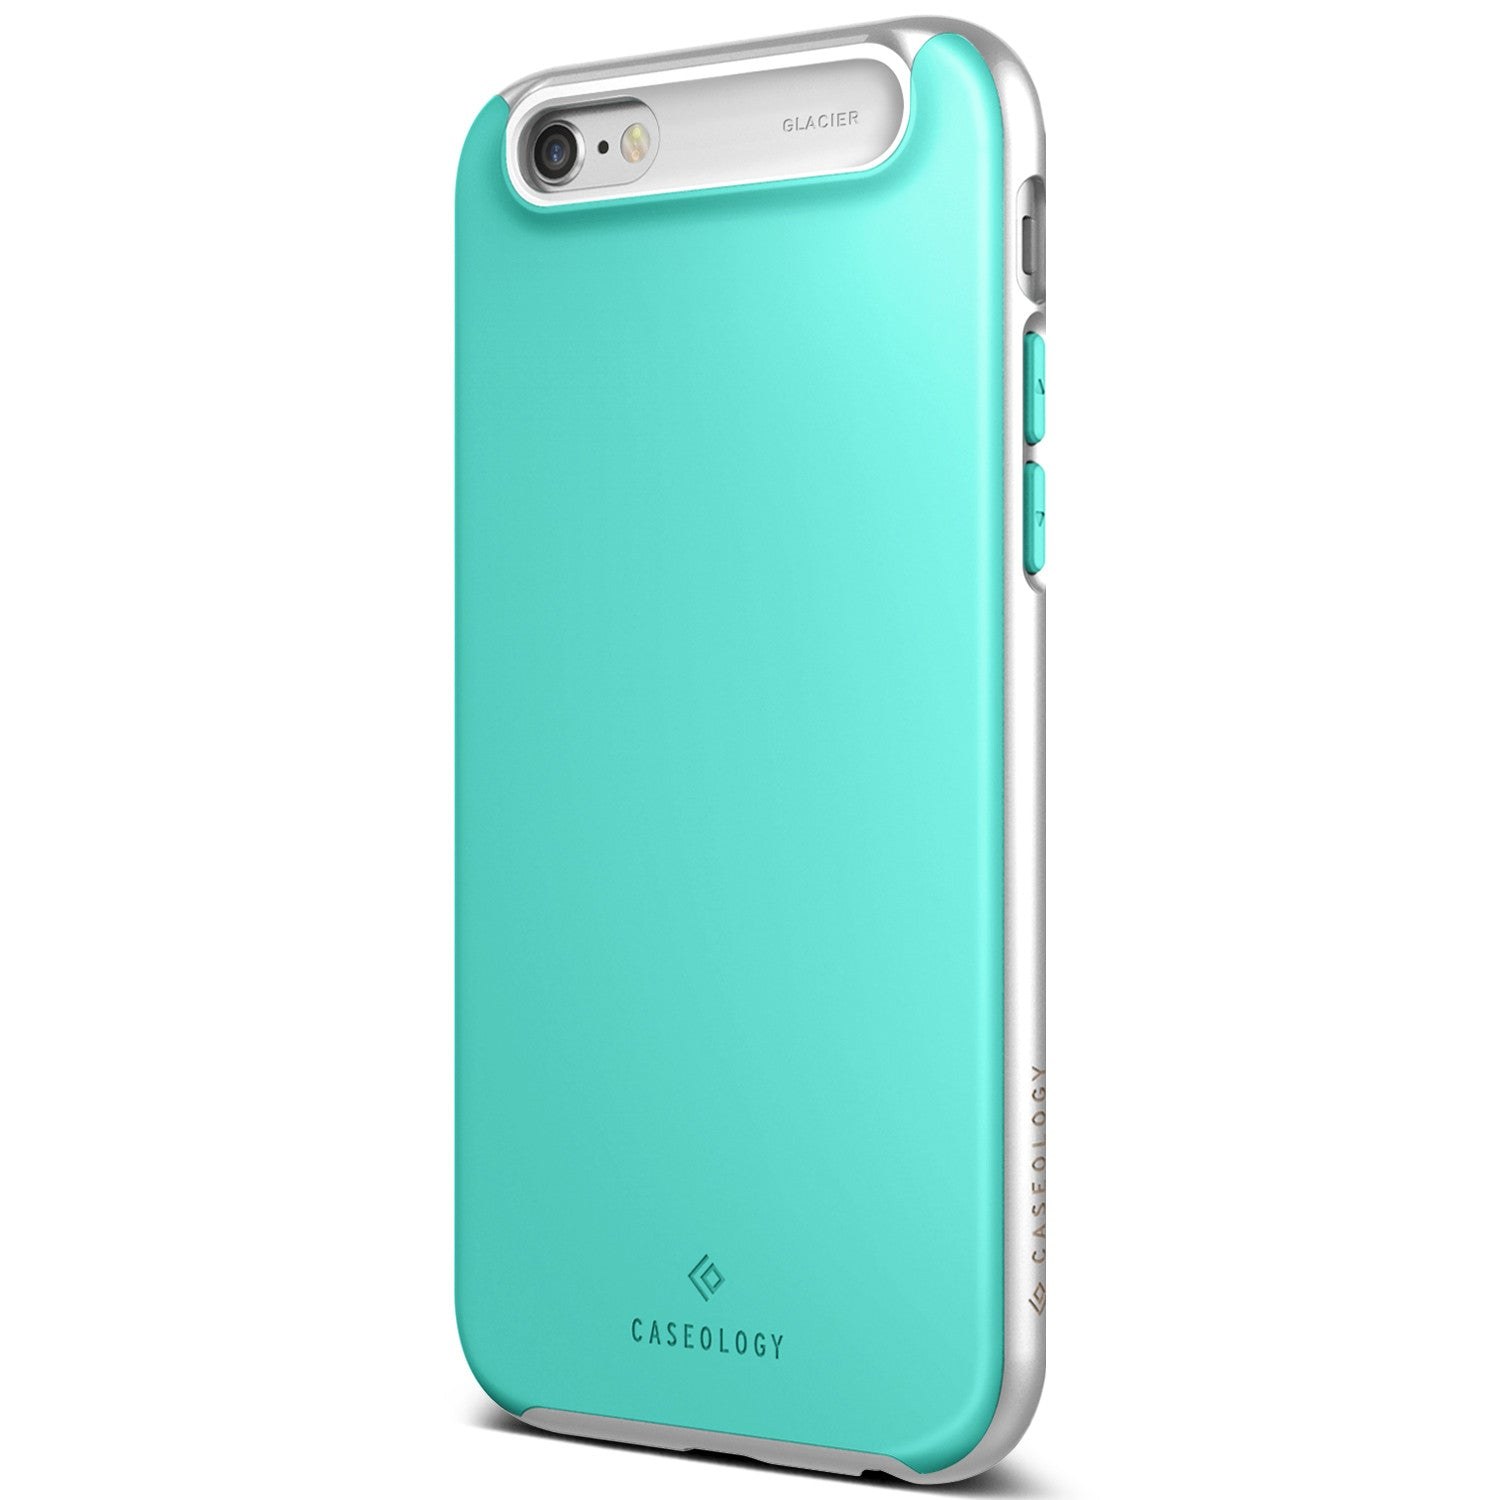 iPhone 6S Case Glacier